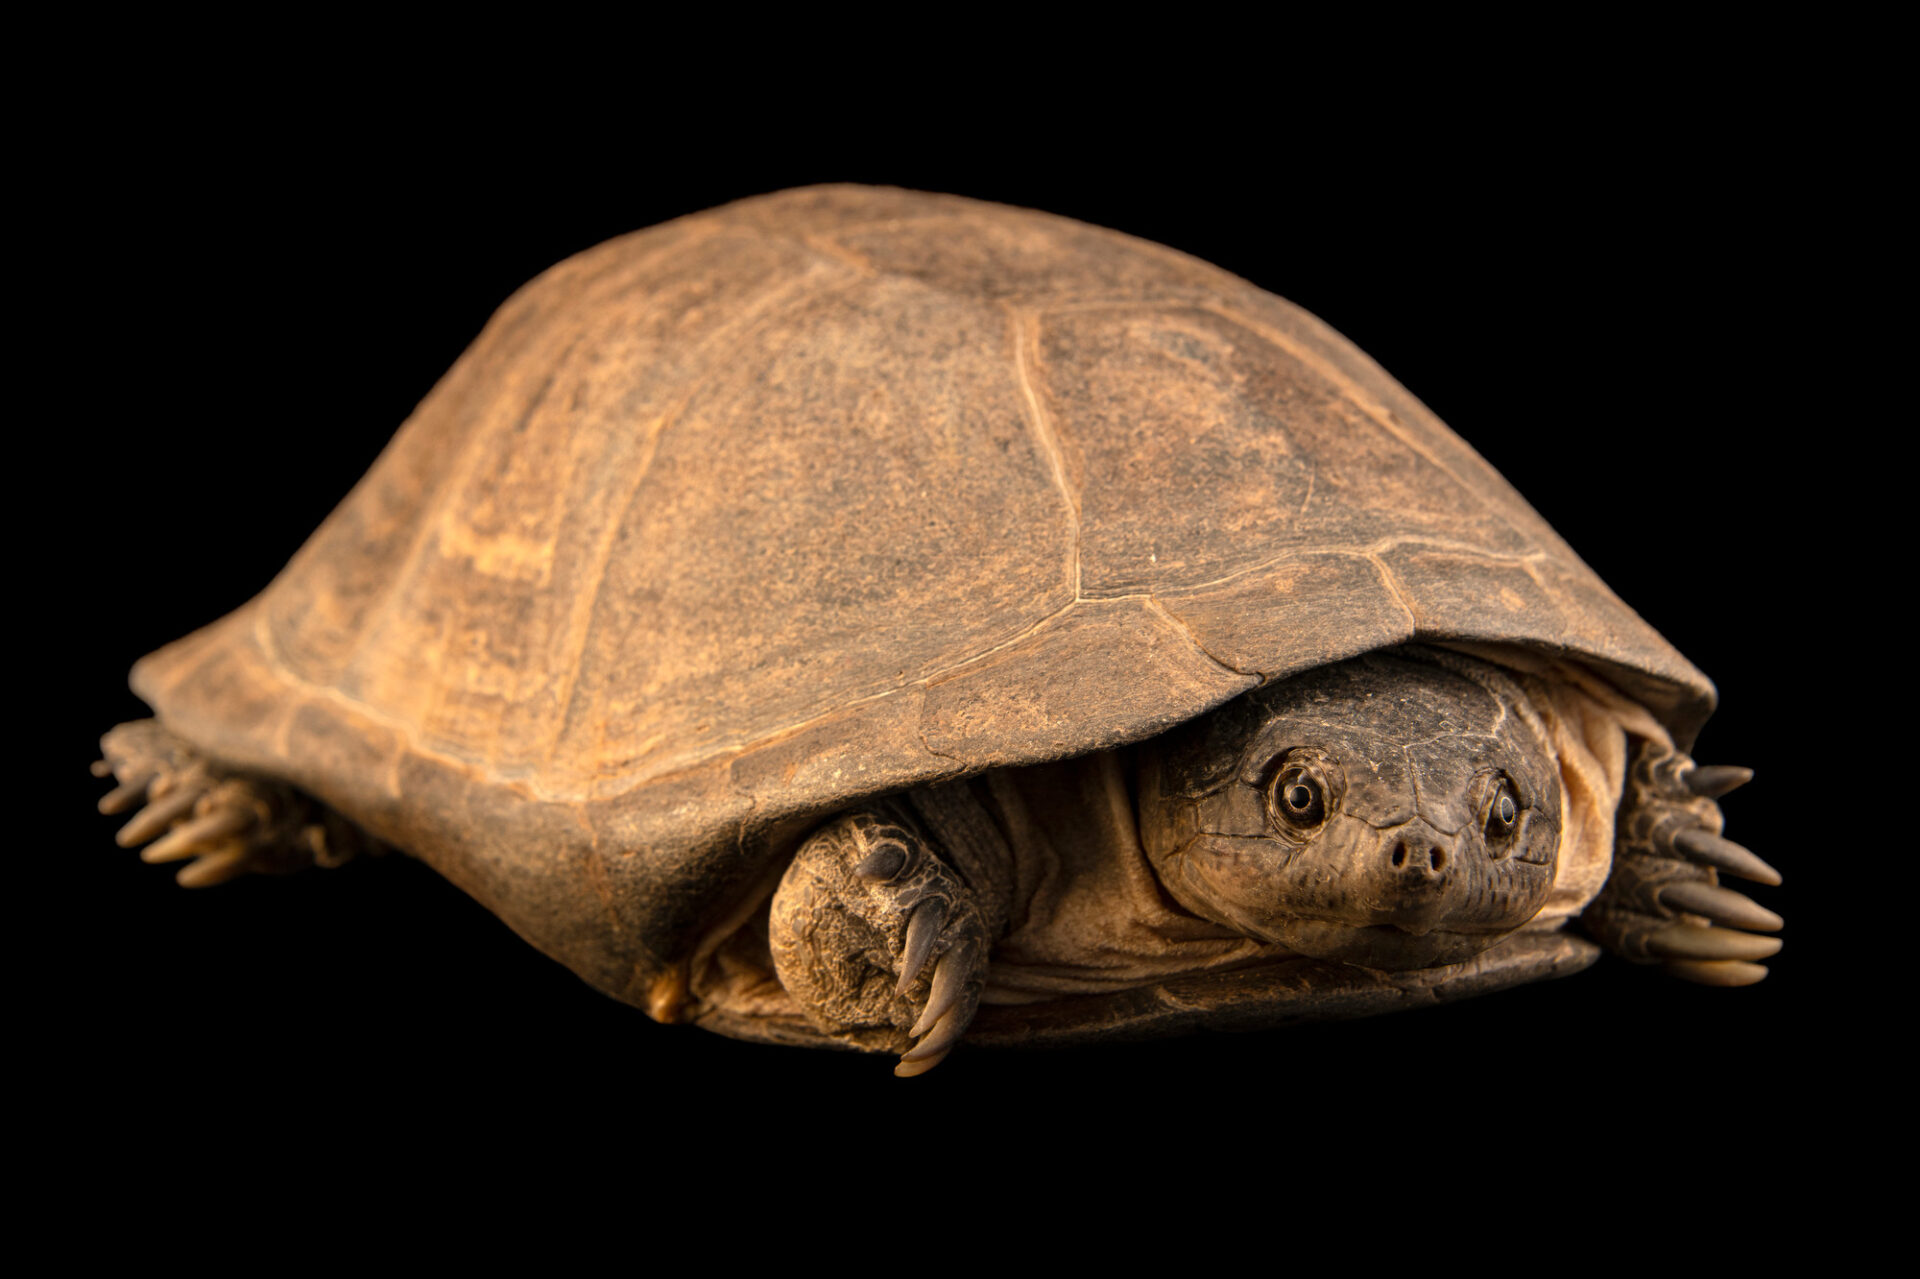 Photo: A West African mud turtle (Pelusios castaneus) at Omaha's Henry Doorly Zoo and Aquarium.